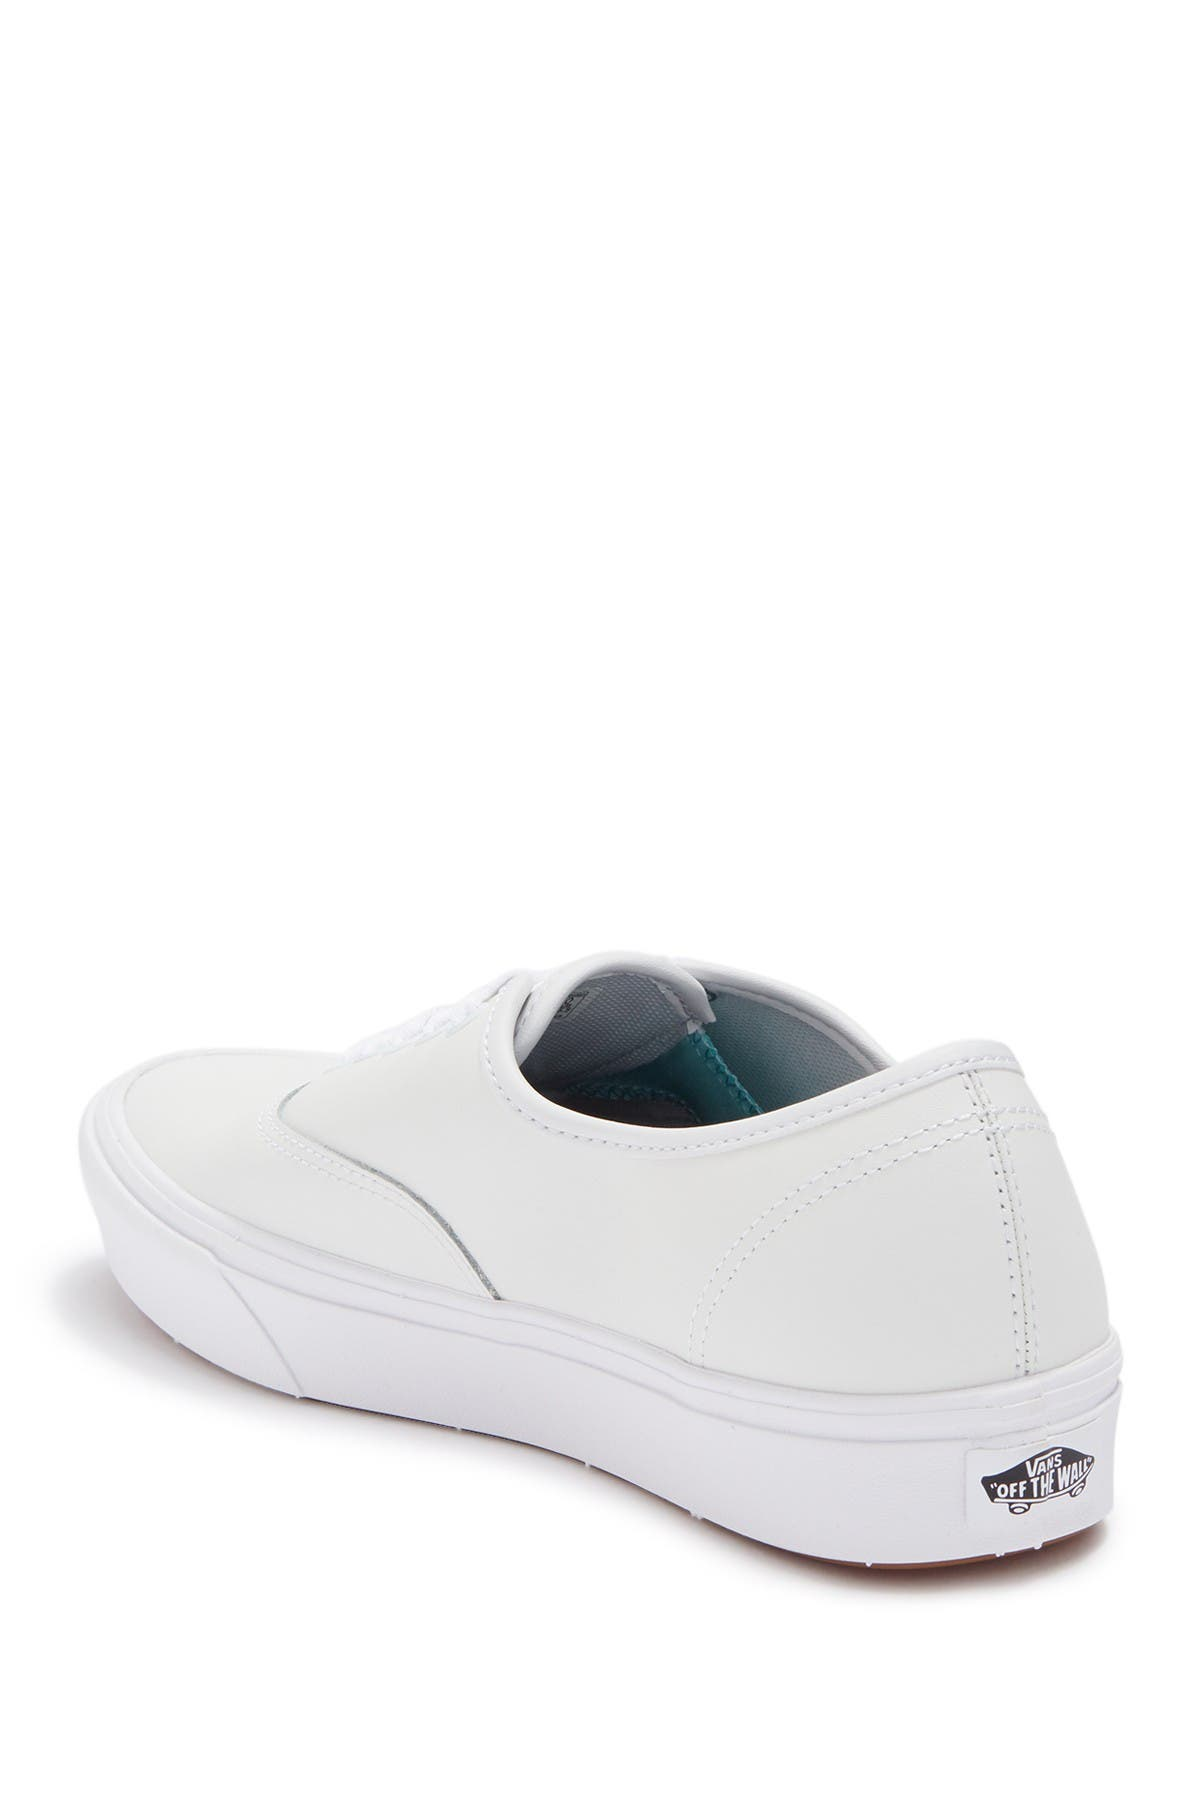 Image of VANS Comfy Cush Leather Sneaker